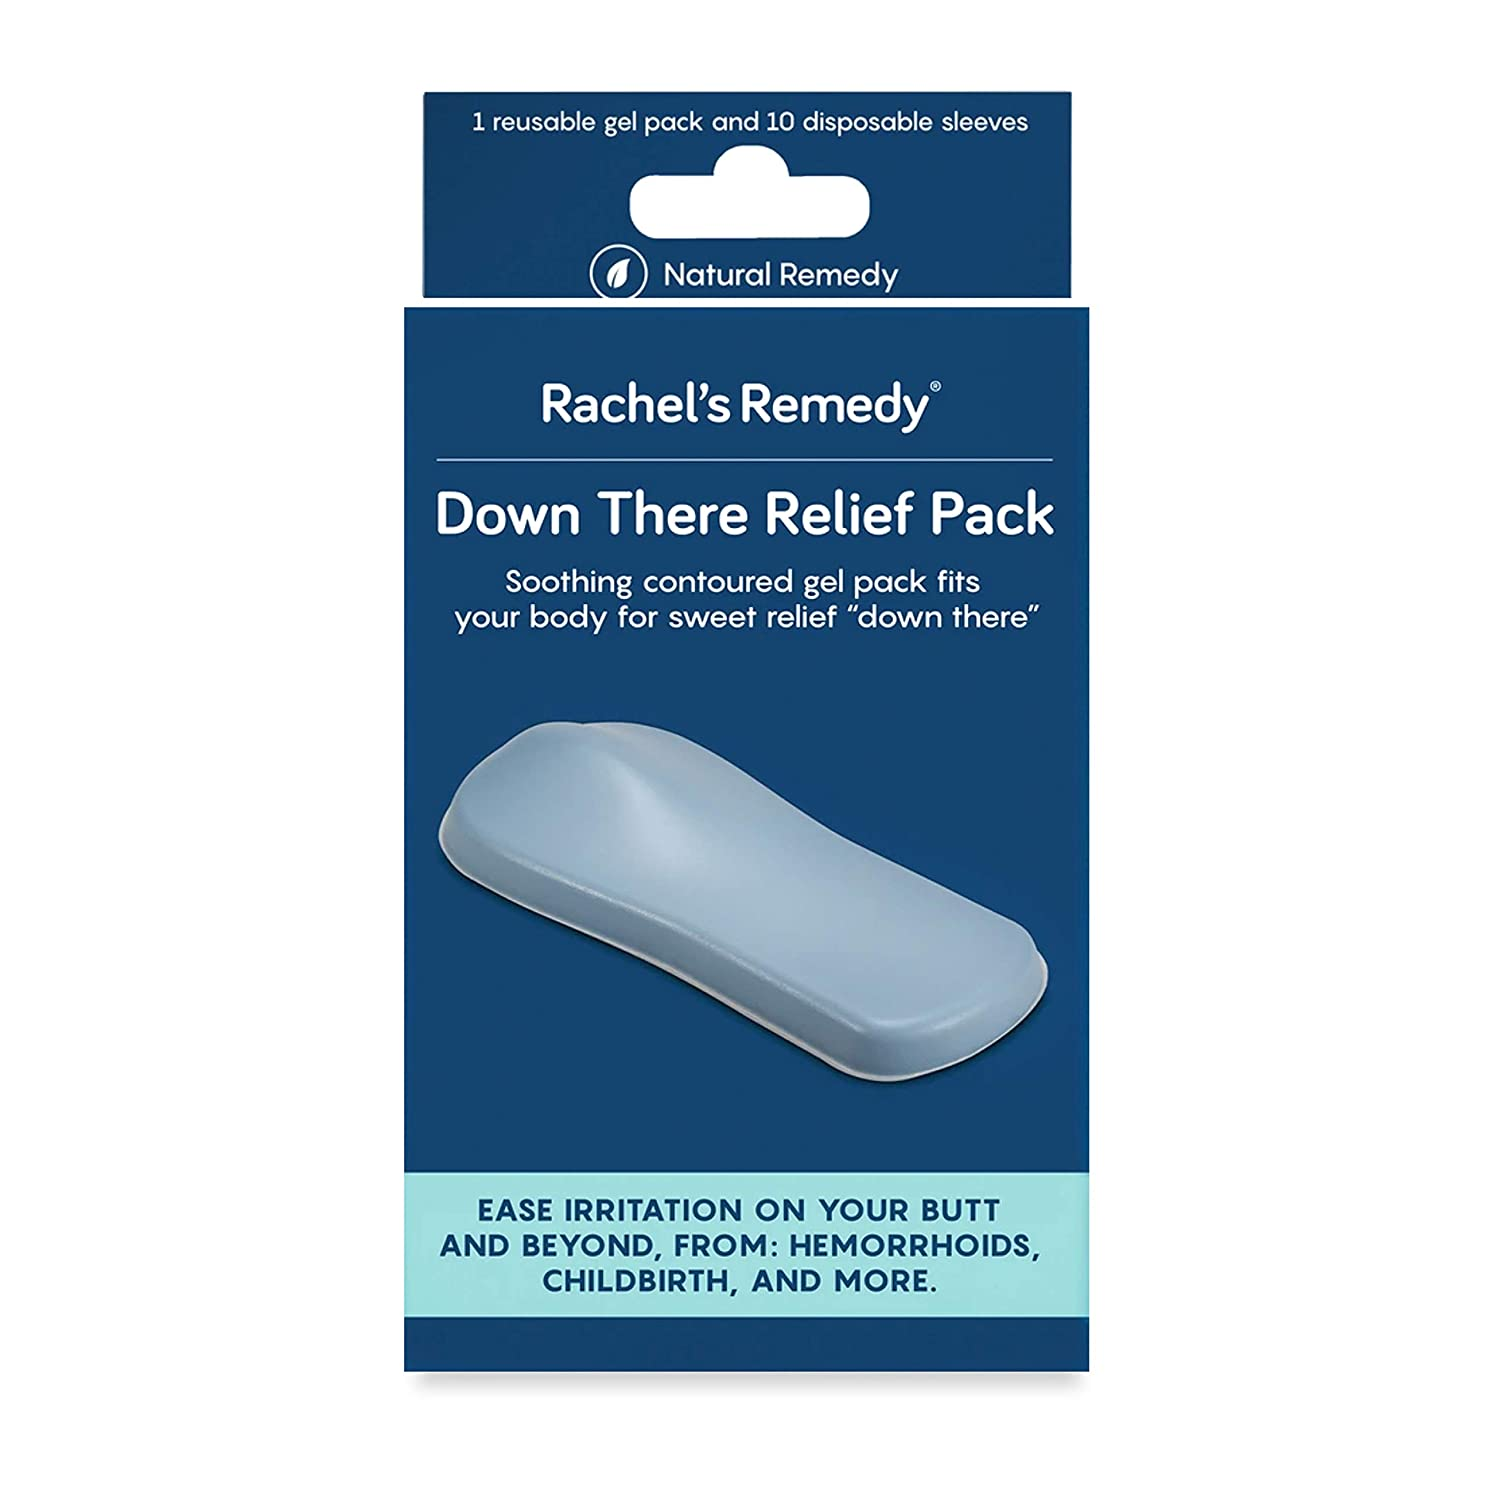 Rachel's Remedy, Down There Relief Pack, Reusable Gel Pad for Cooling and Heating Relief